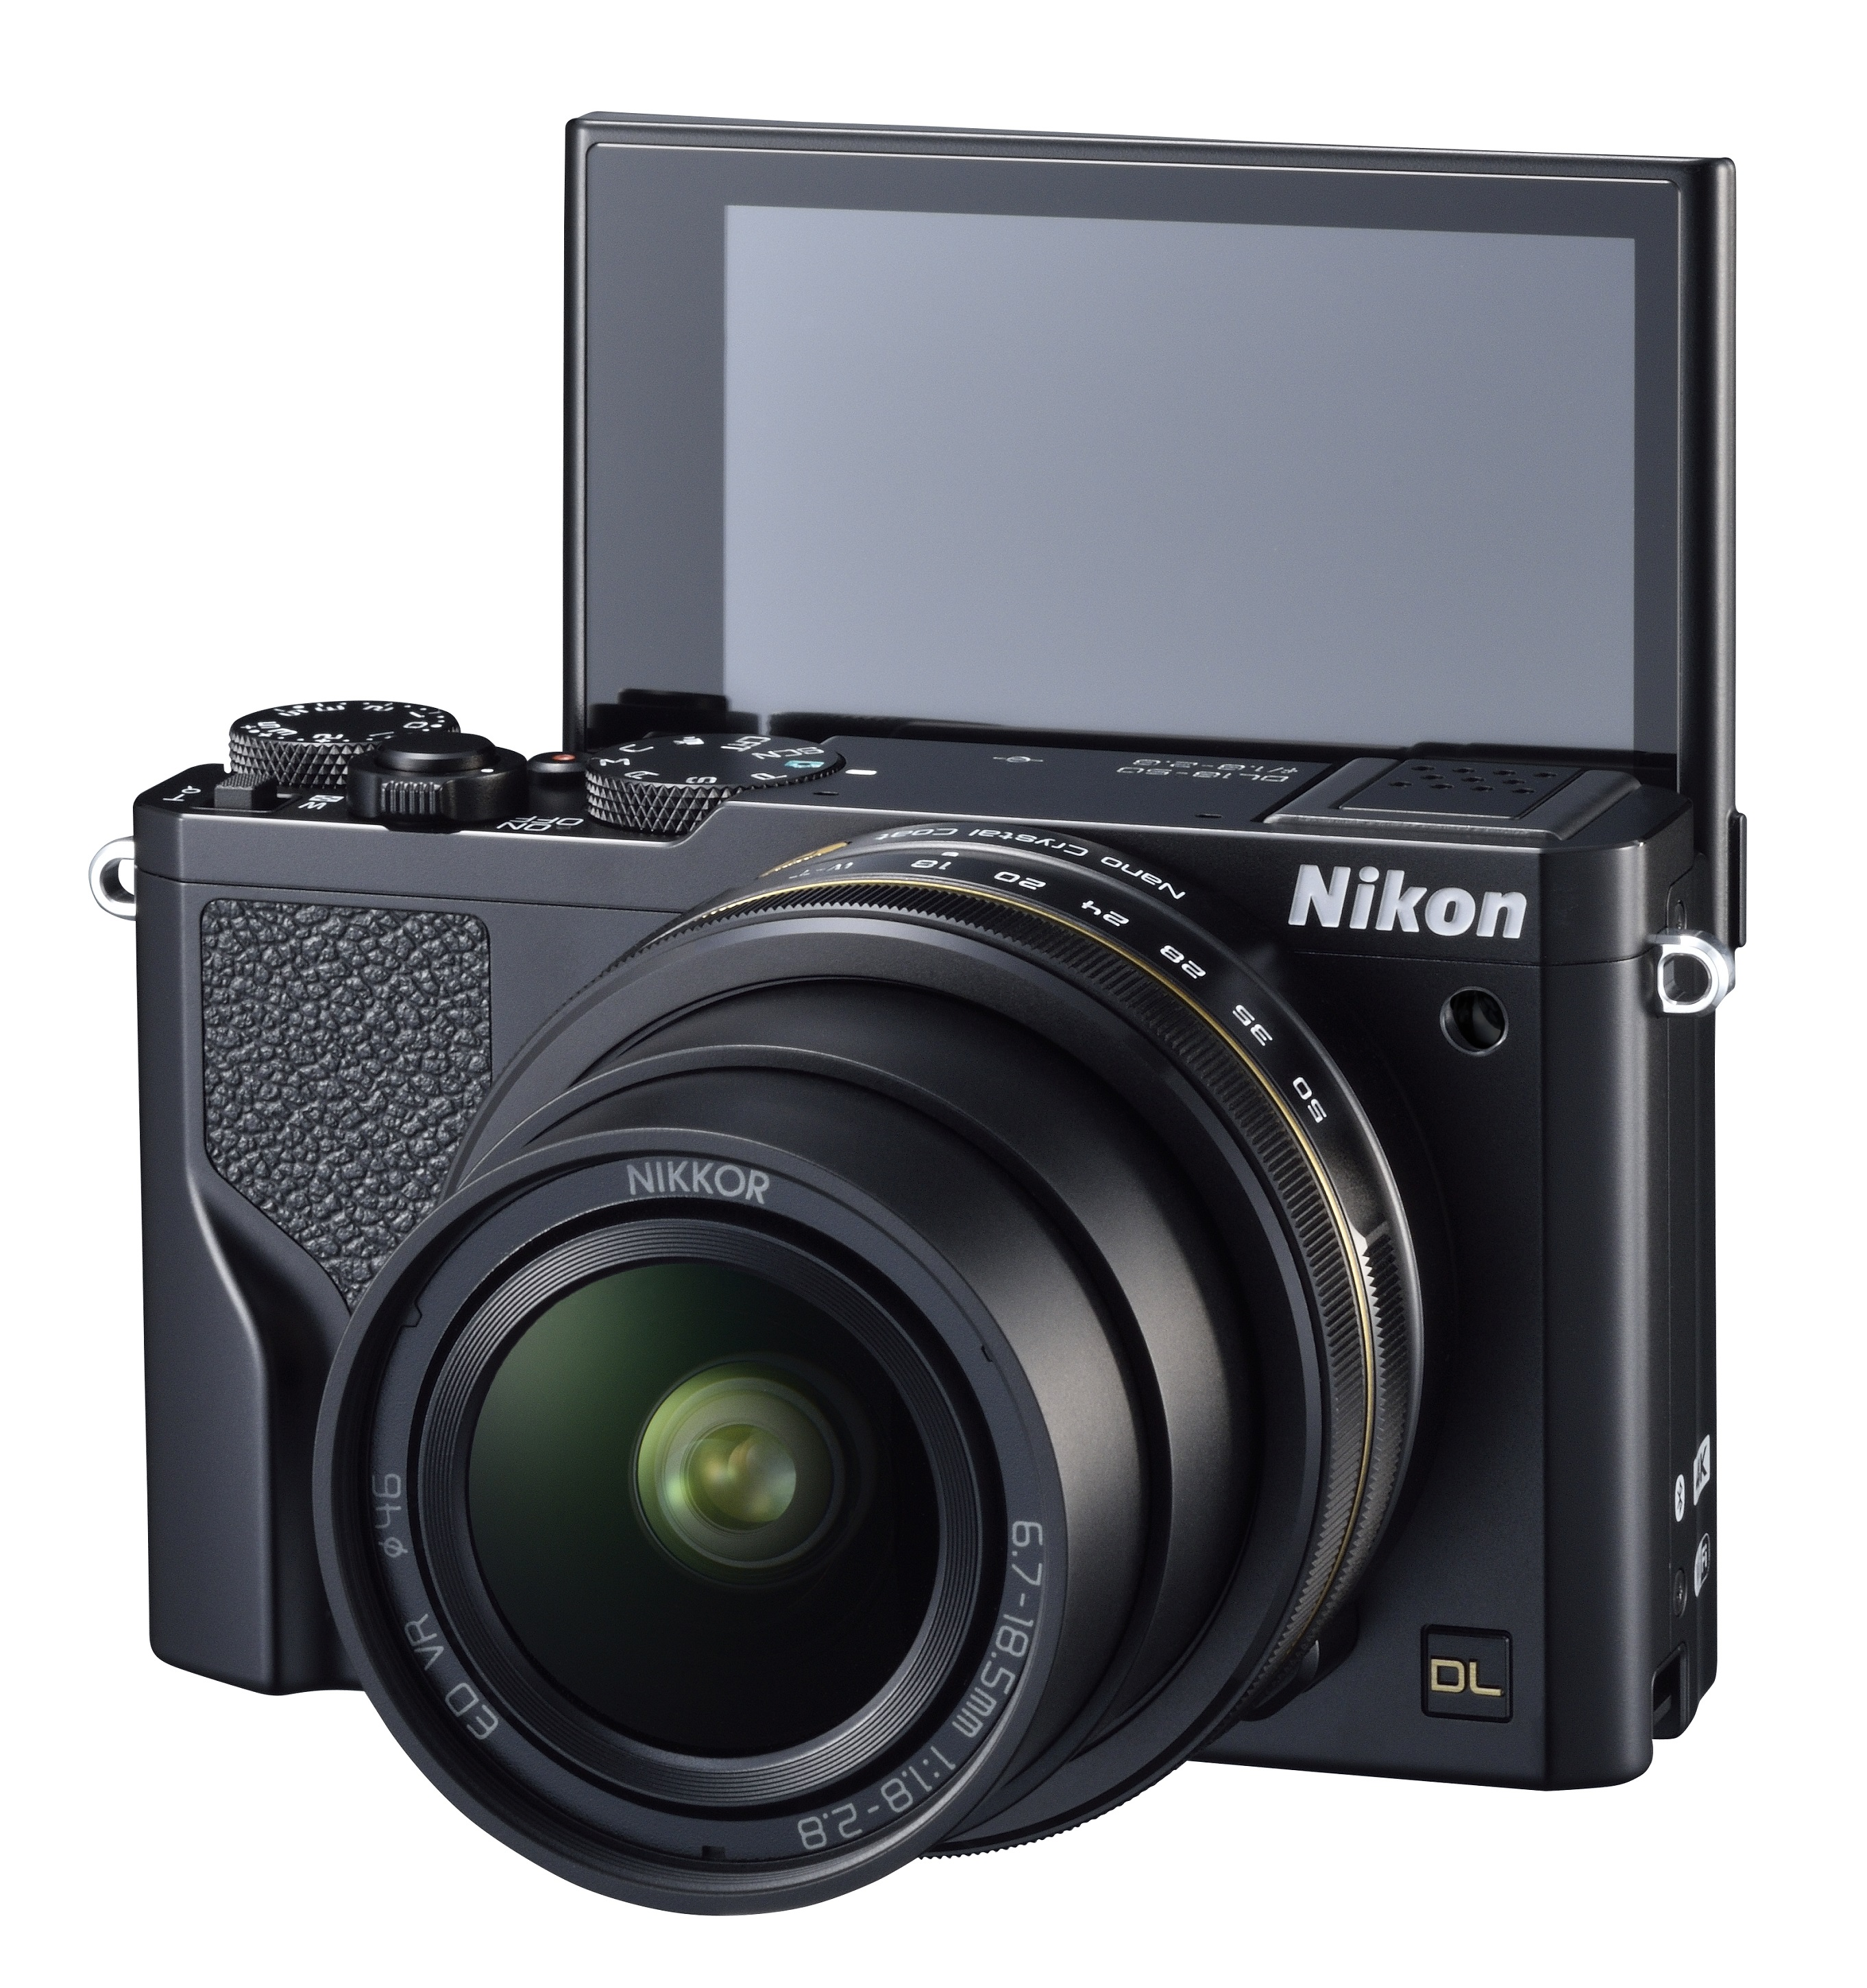 """Nikon Puts the """"Premium"""" Back in Compact with Three 20.8 MP, 4K ..."""